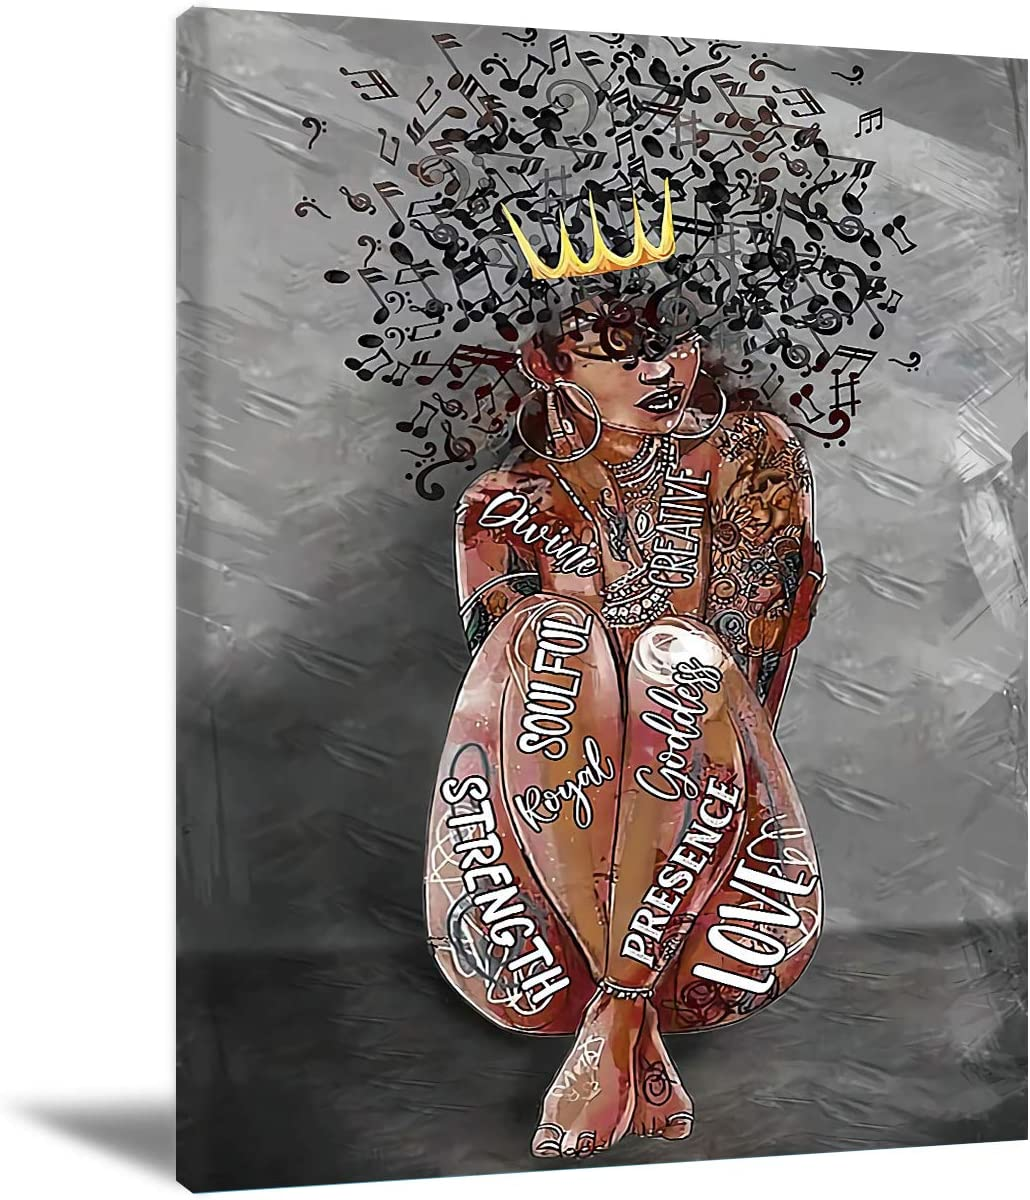 Black Queen Wall Art Africa America Poster Black Woman Love Music Canvas Wall Art Abstract Contemporary Canvas Prints Painting Home Decor For Bedroom Living Room 16X24 Inch No Frame